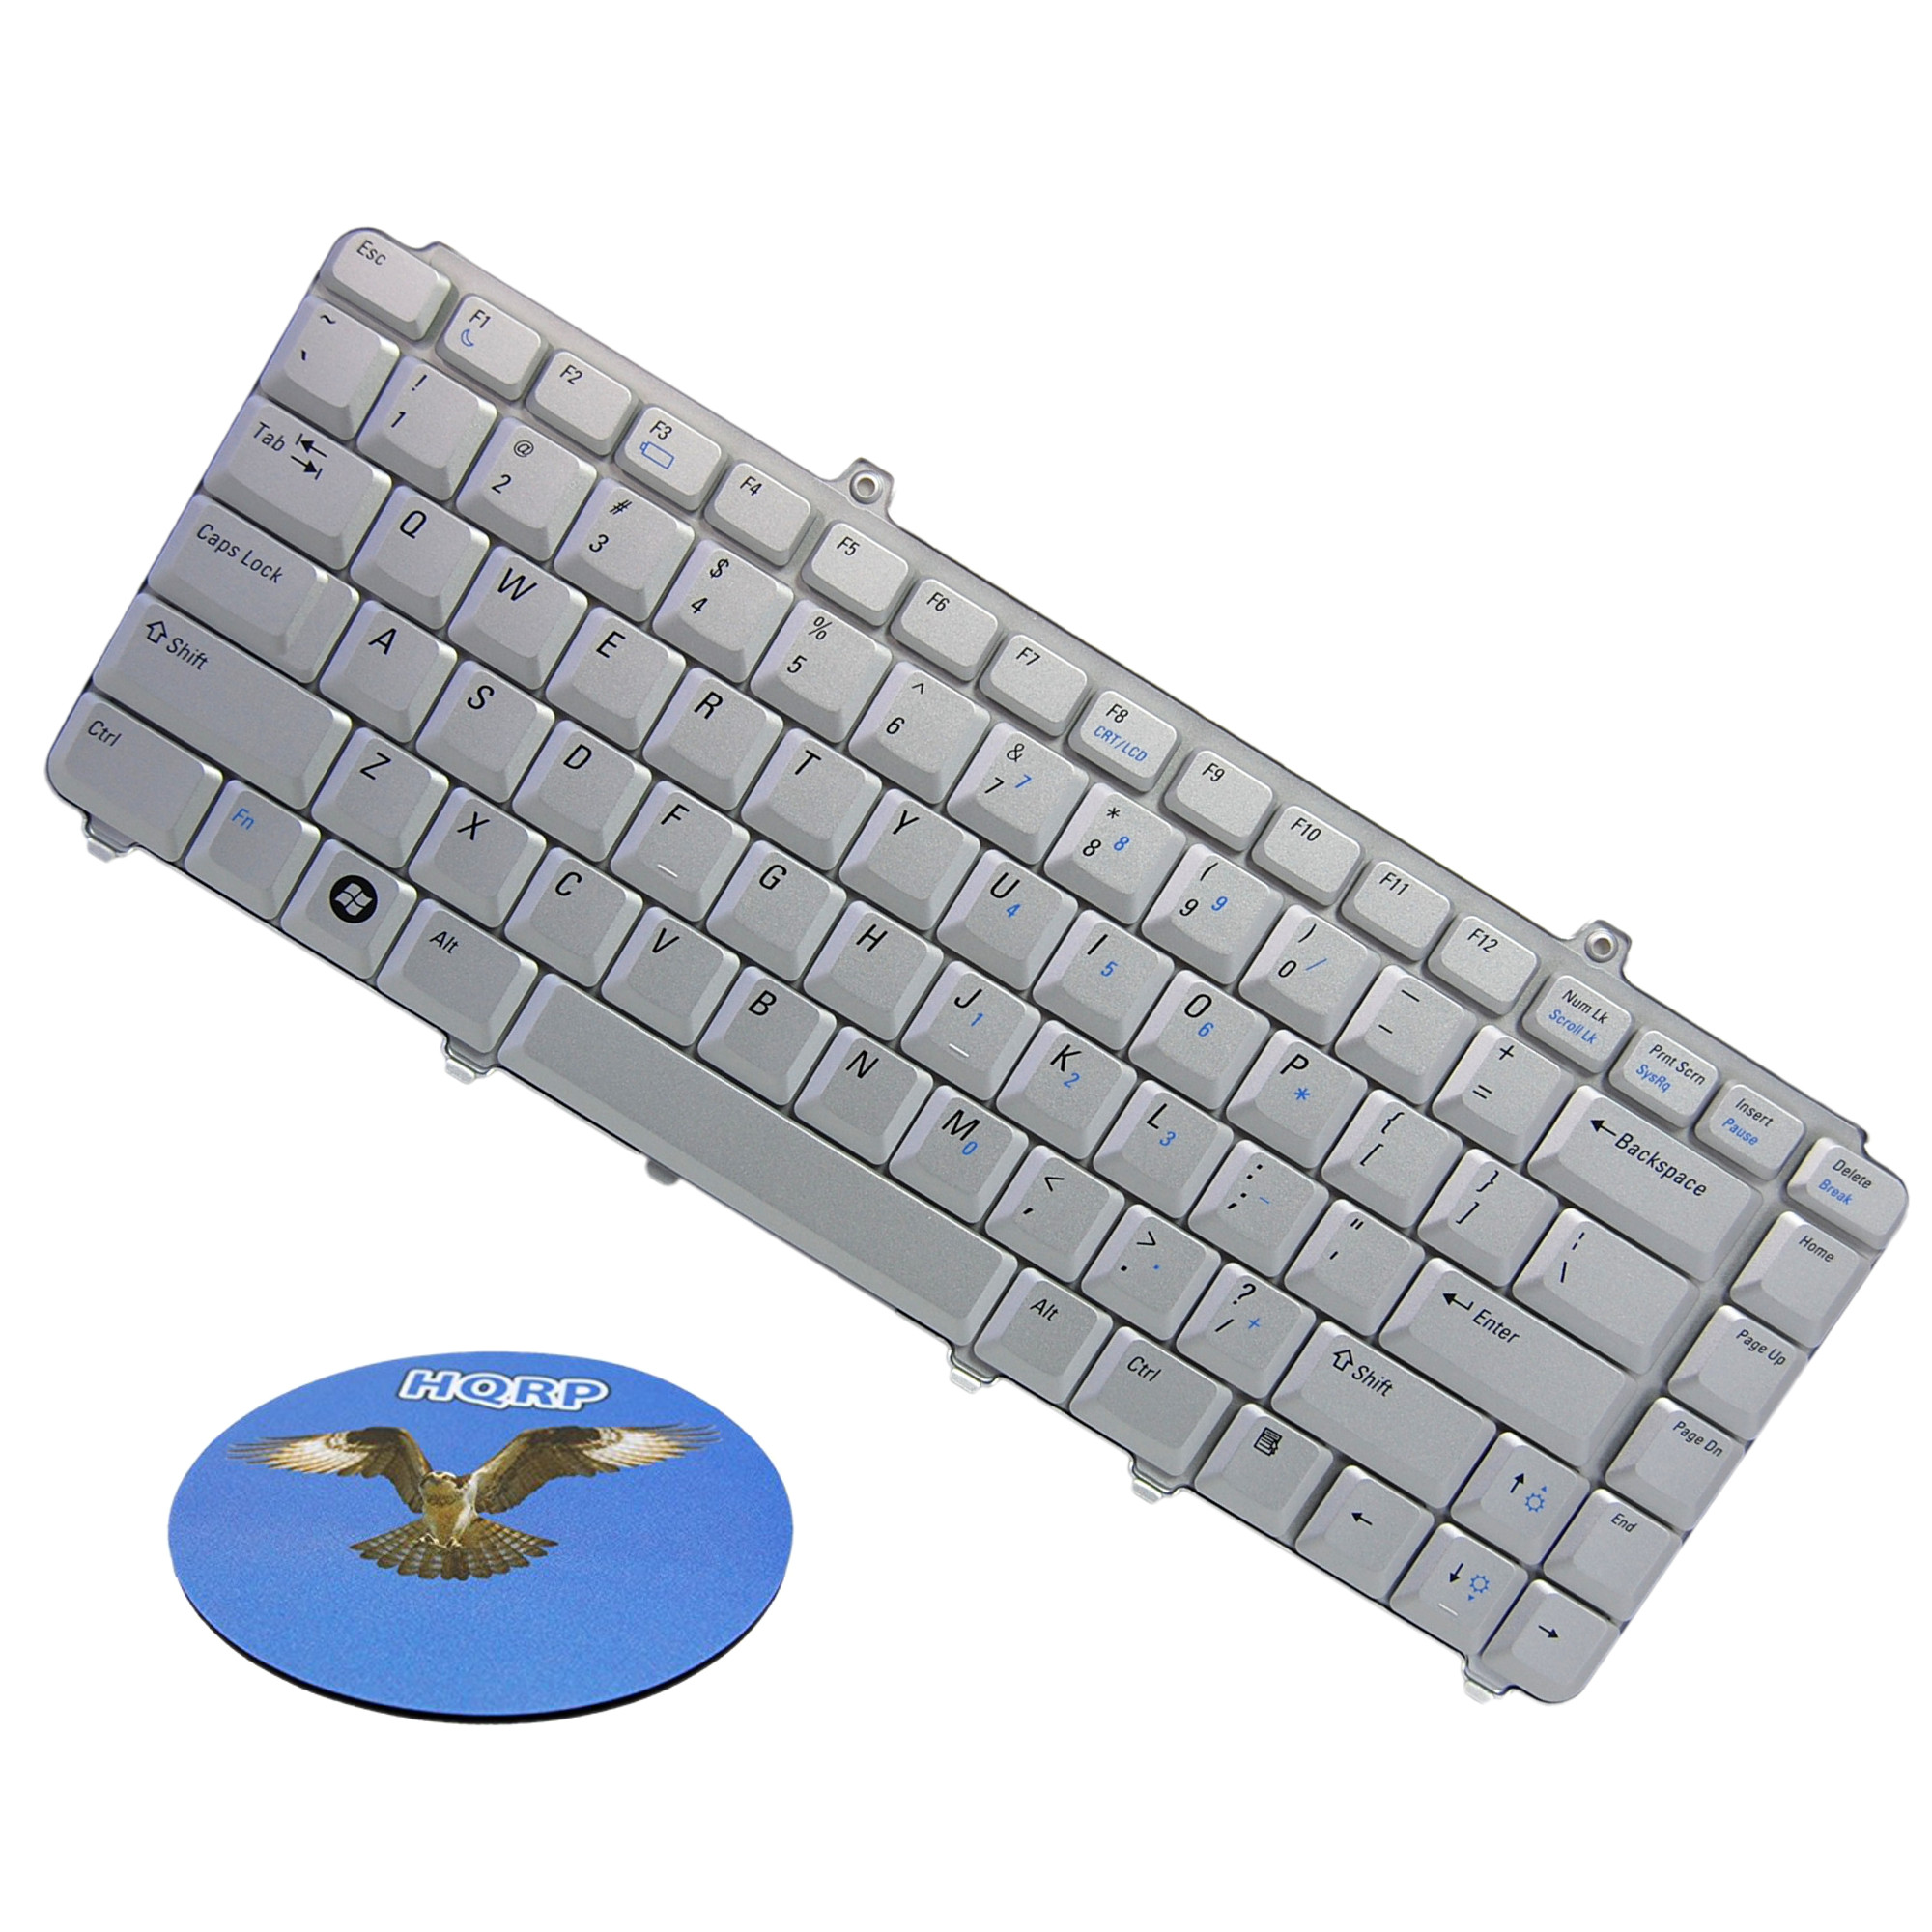 HQRP Laptop Keyboard for Dell PP22L / PP25L / PP28L / PP29L / NSK-D9001 / YY960 Notebook Replacement plus HQRP Coaster